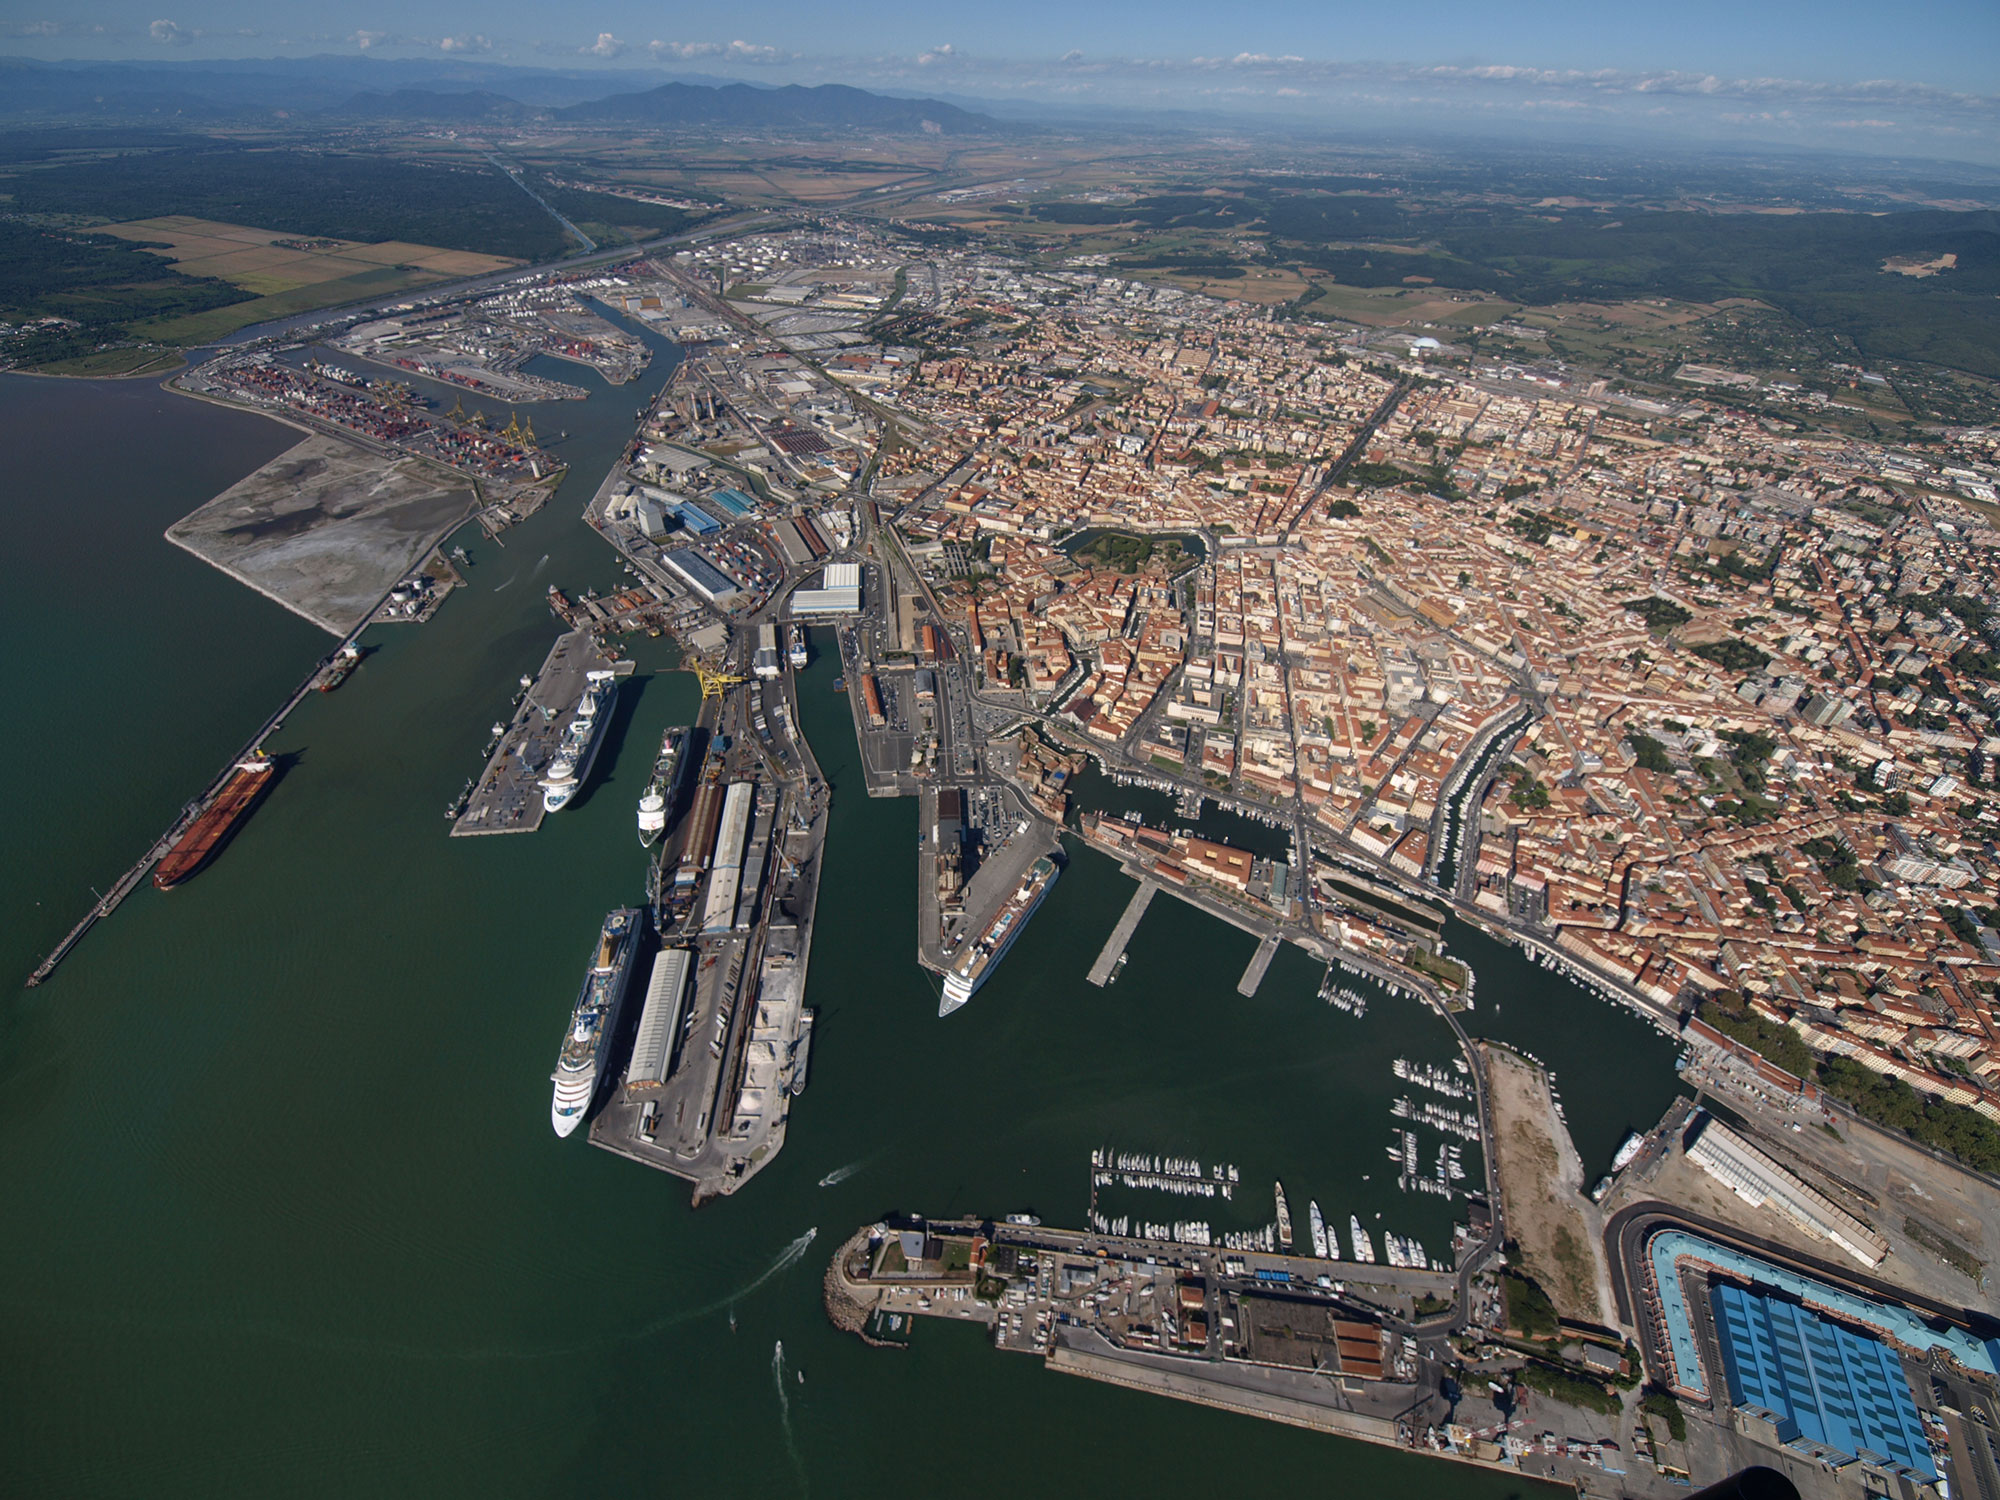 Port-of-Livorno-general-view-rid